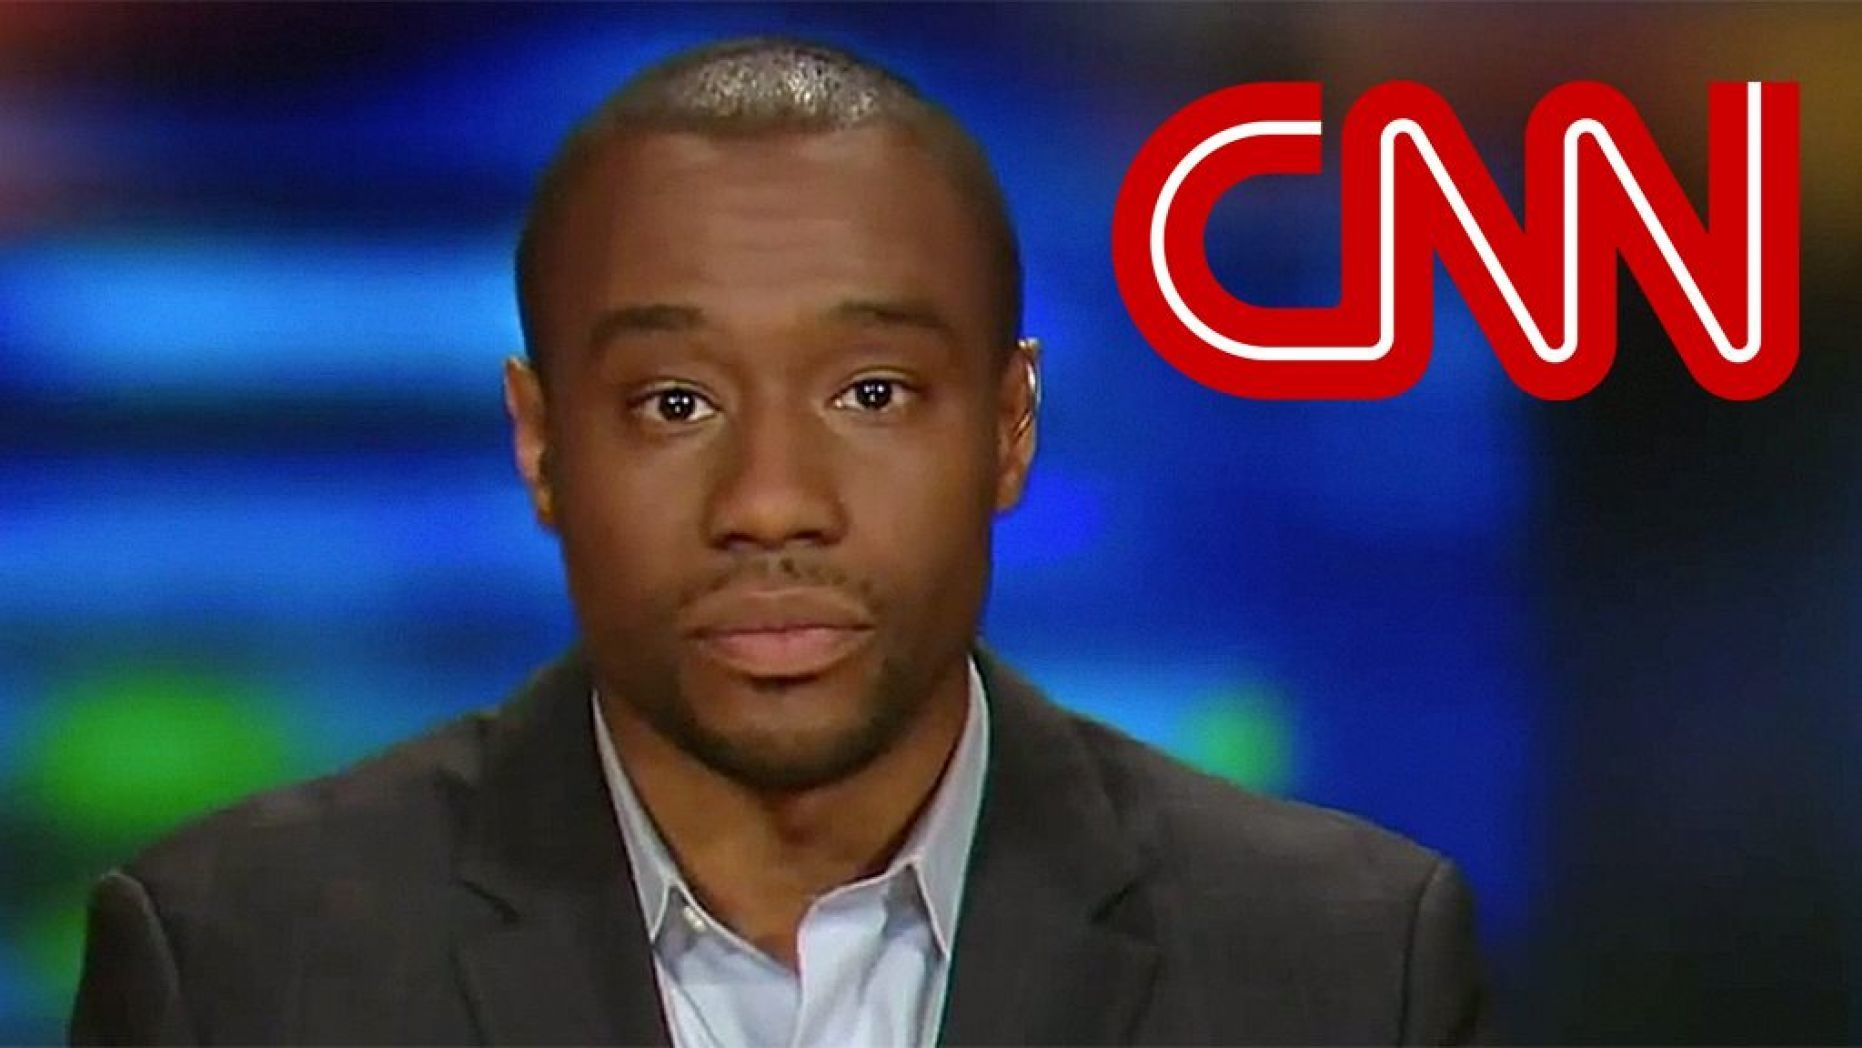 SUPPORT TRUTH-TELLER Marc Lamont from CNN who's being PERSECUTED by radical Jews!